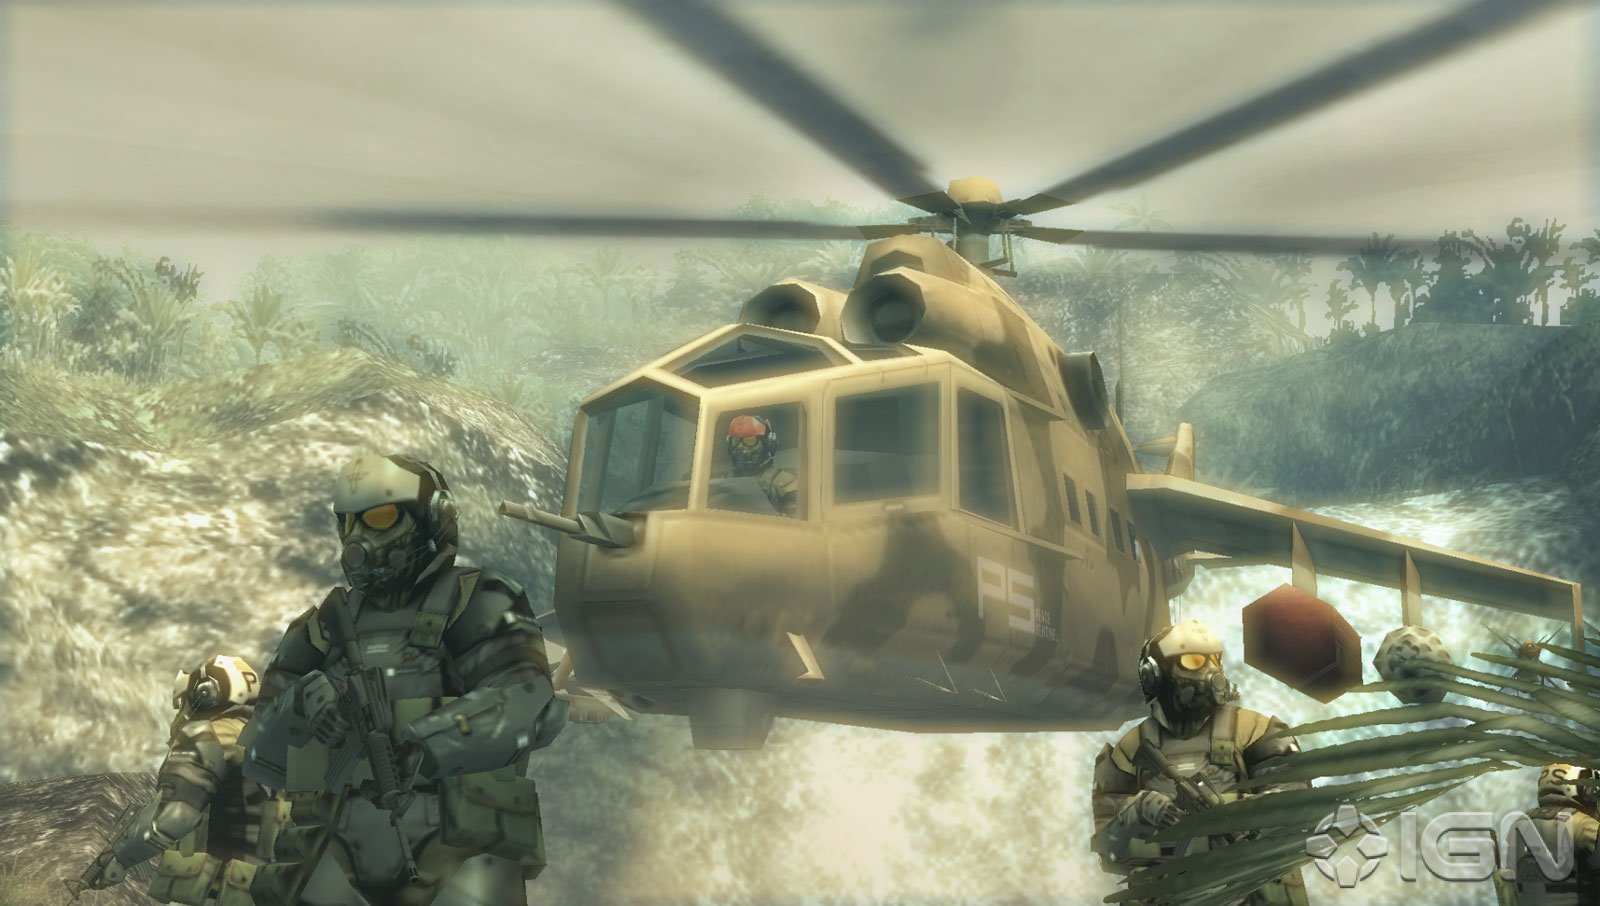 images about Metal Gear Solid Peace Walker on Pinterest 1600x906